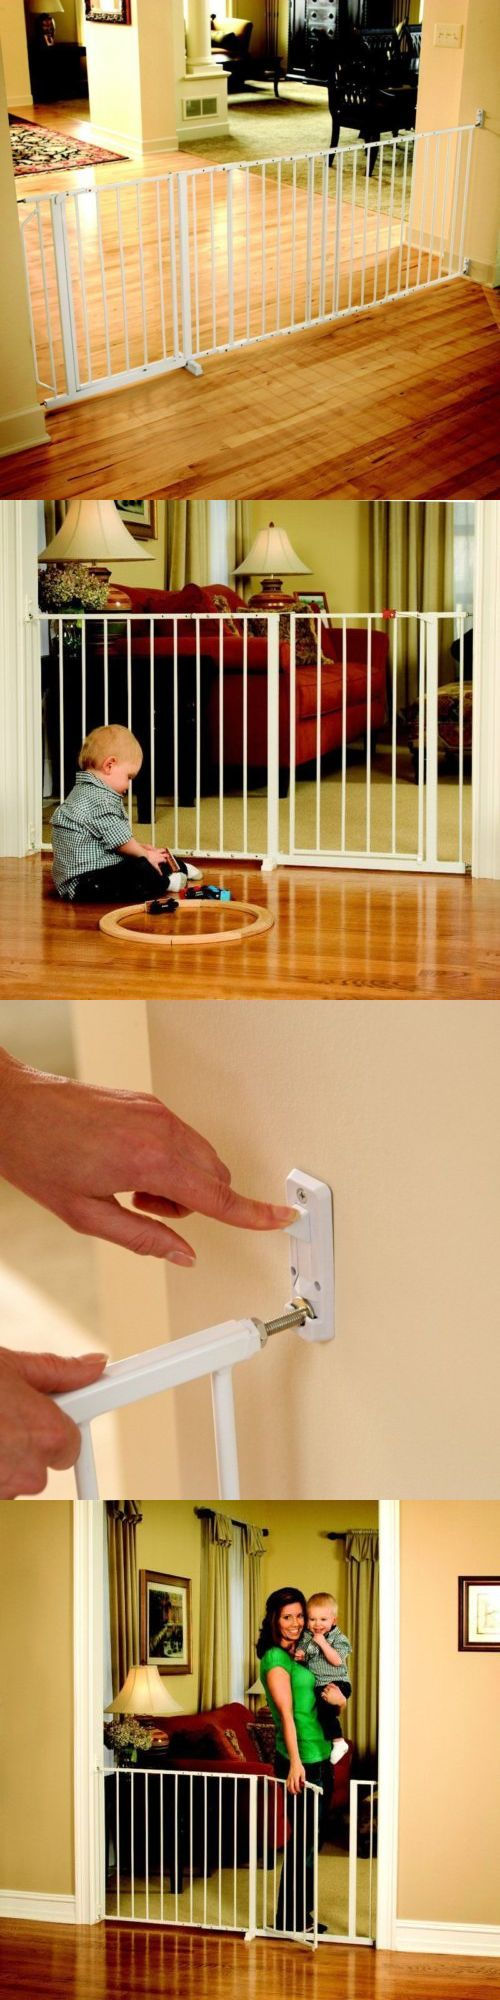 Safety Gates 117029: Baby Gate Extra Wide Hardware Mounted Top Of Stairs Pet Security Safety Sturdy -> BUY IT NOW ONLY: $67.9 on eBay!